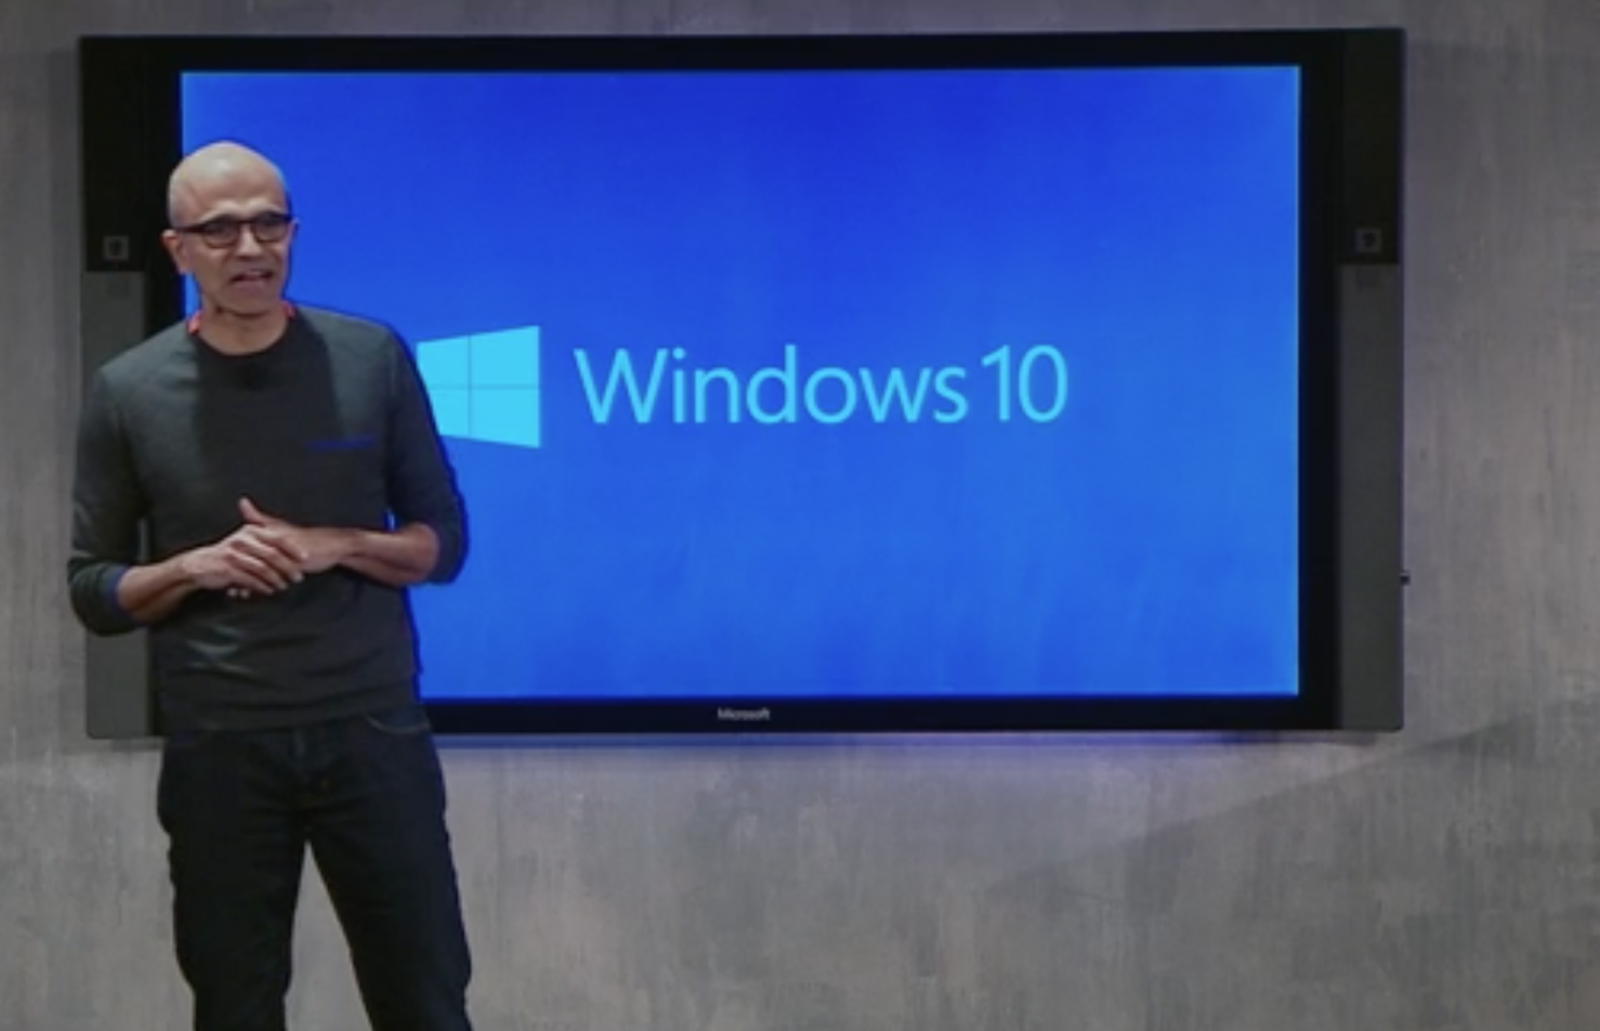 Satya Nadella Windows 10 launch